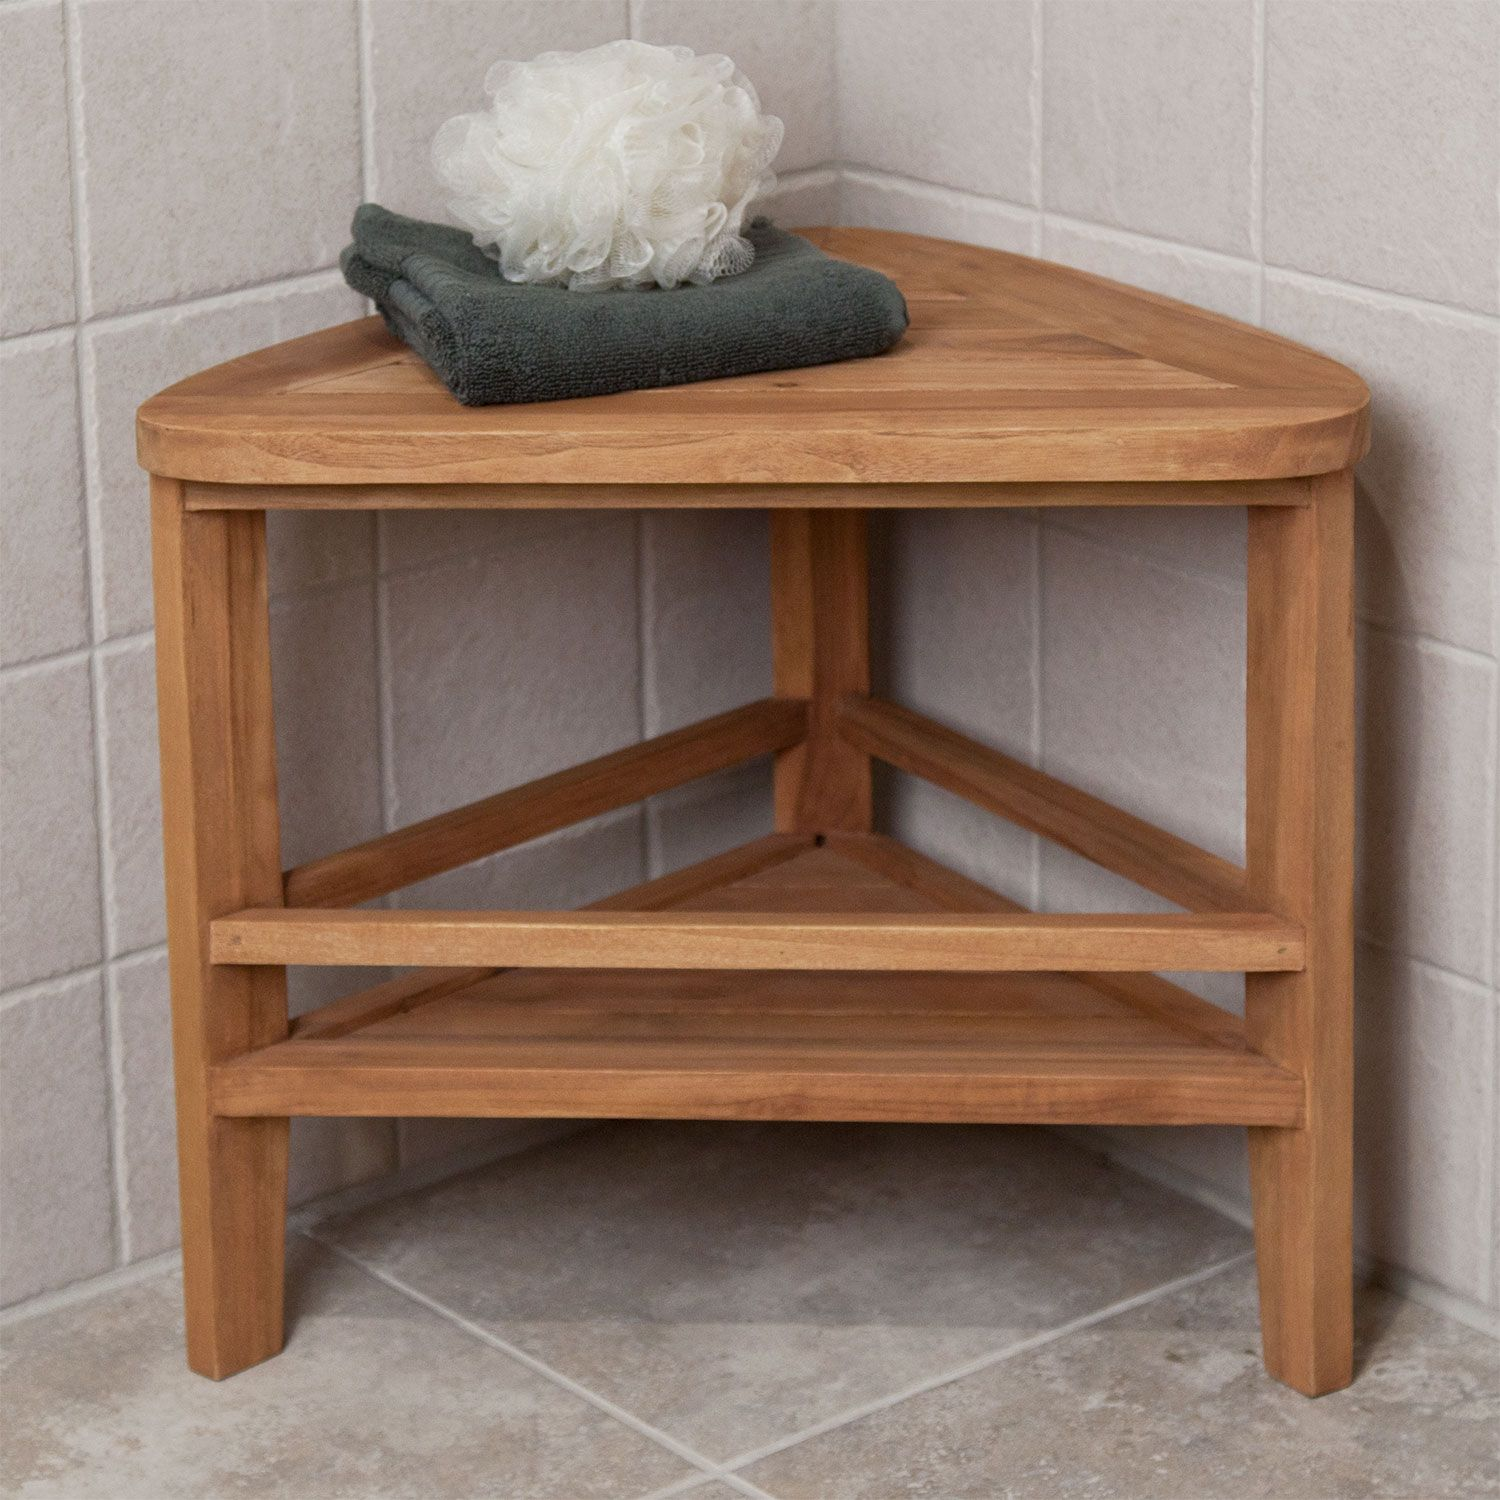 Teak Corner Shower Stool | Teak, Stools and Corner